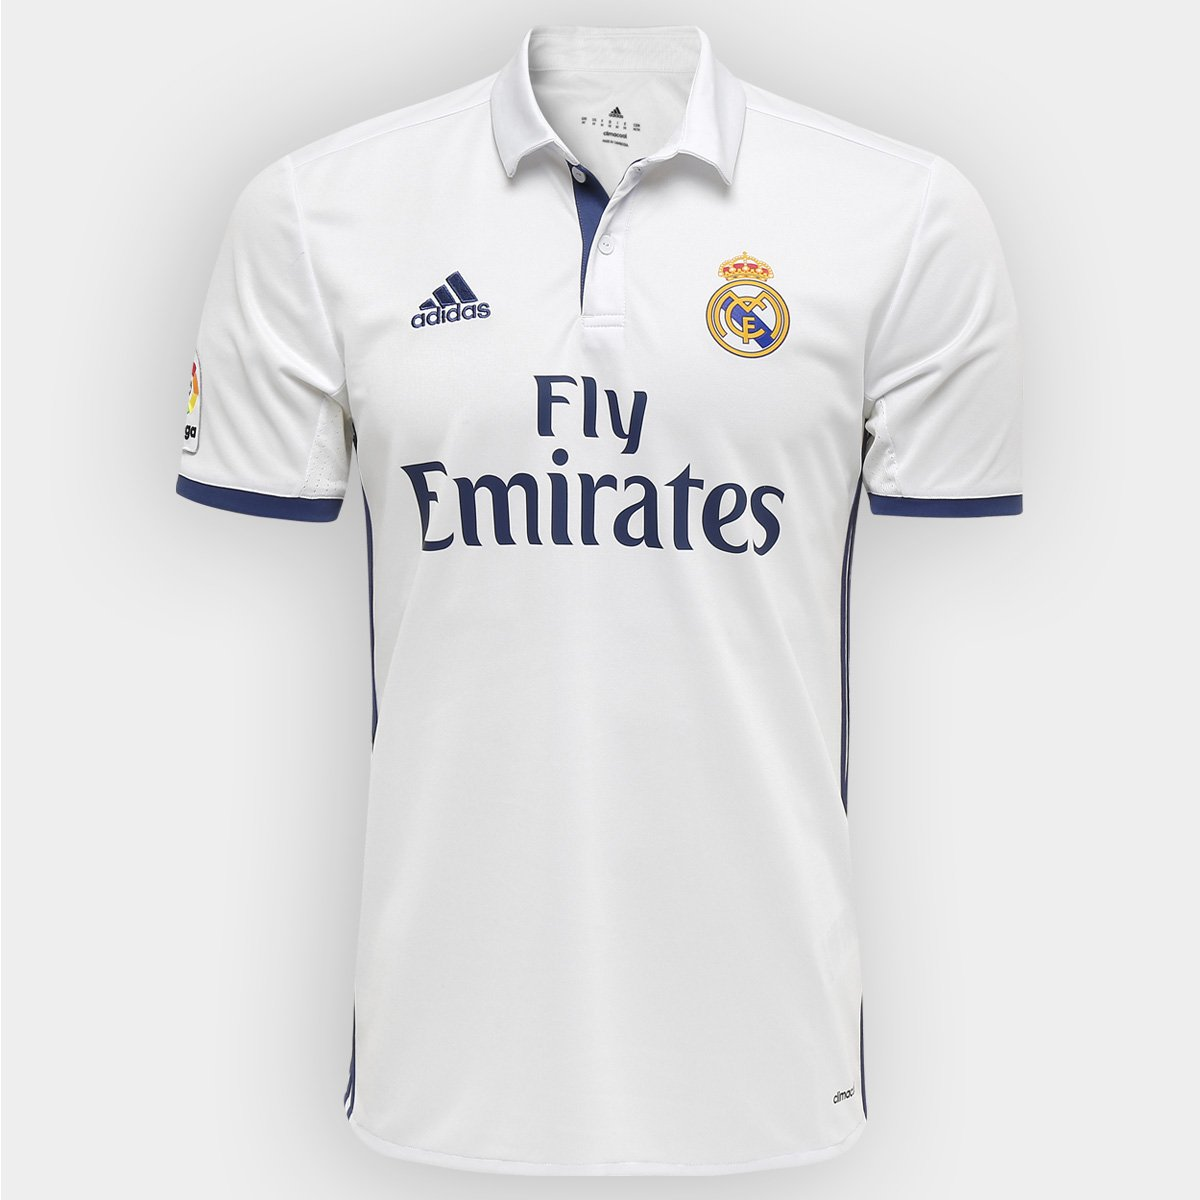 Camisa Real Madrid Home 16 17 s nº Torcedor Adidas Masculina - Compre Agora   2d8091fad4bf3